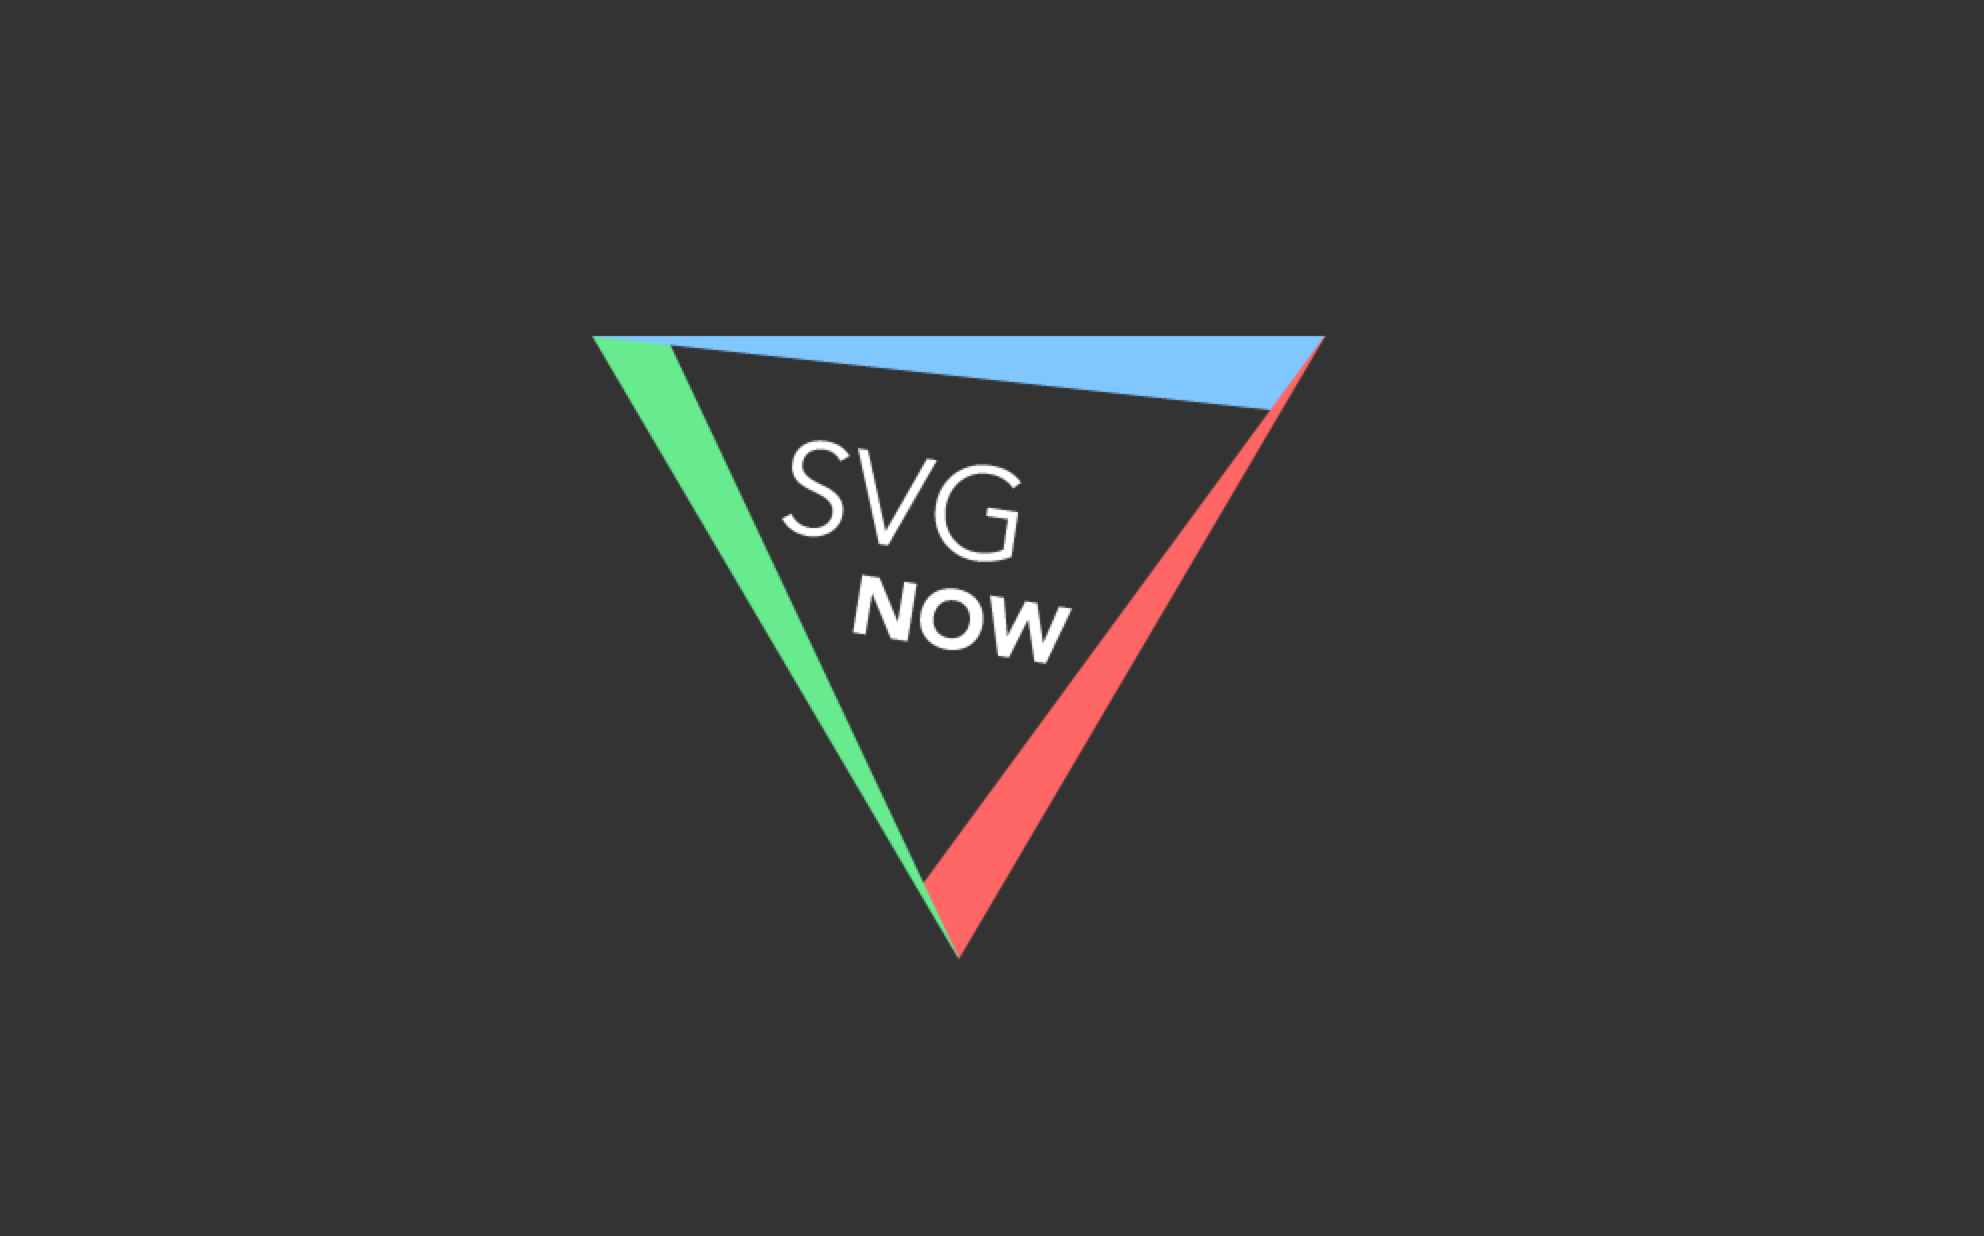 SVG NOW plugin logo.